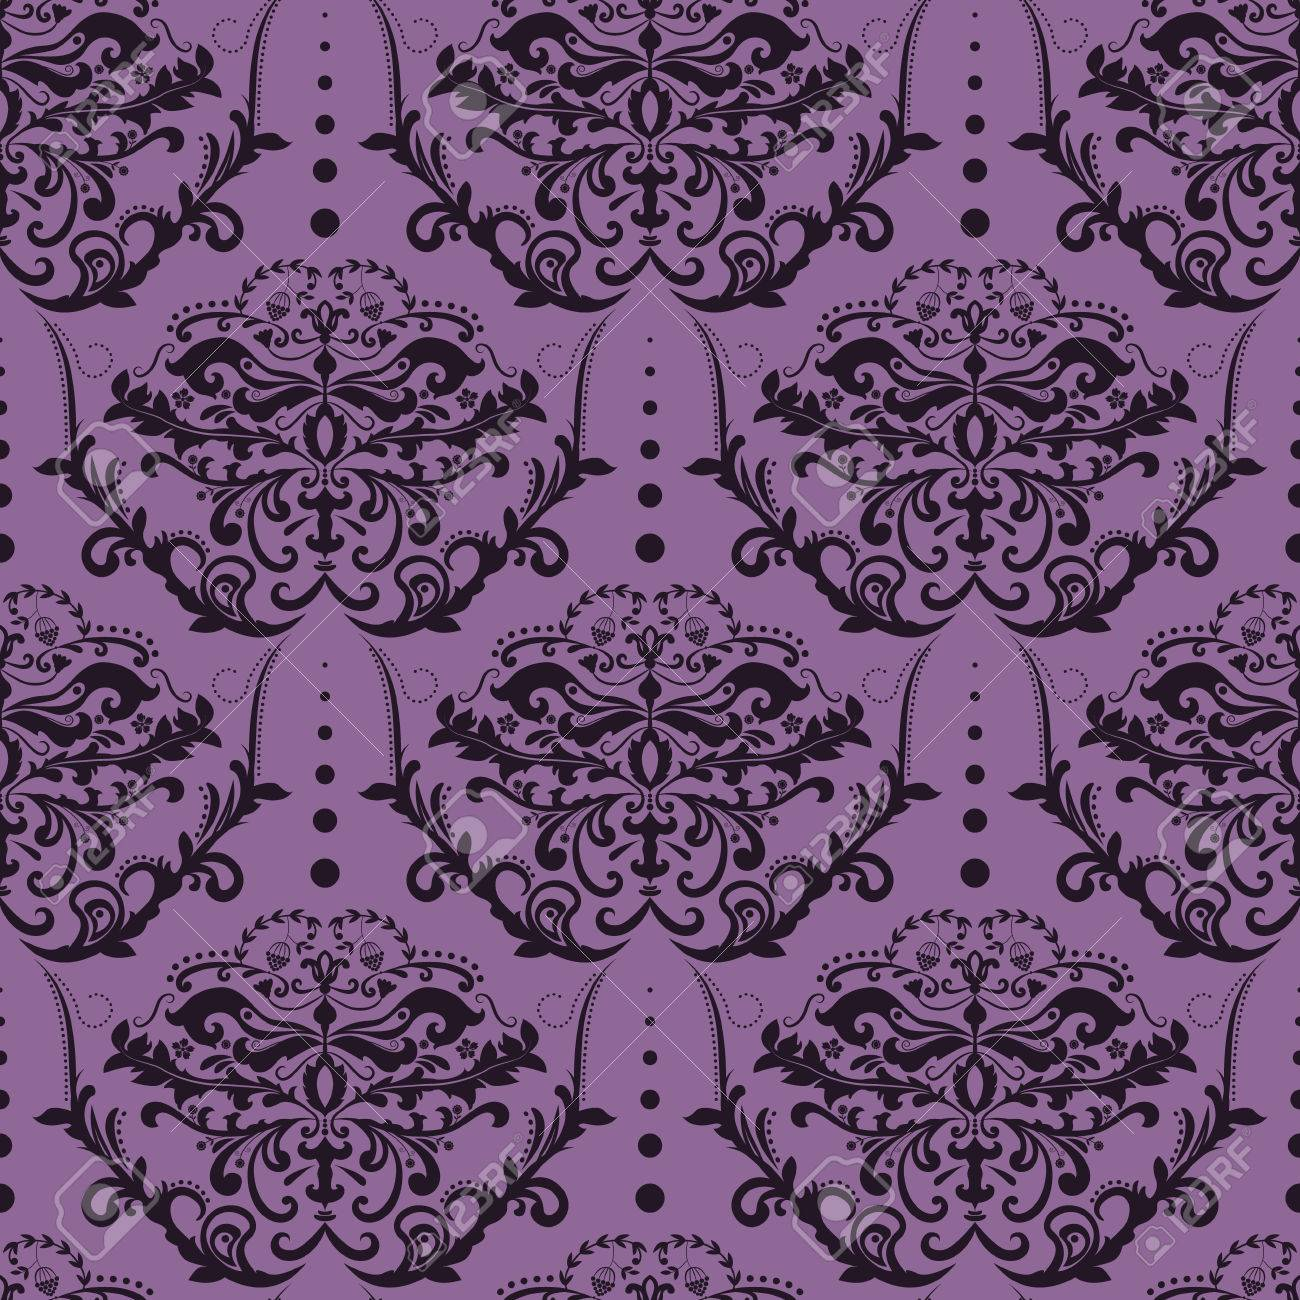 Purple And Black Seamless Damask Wallpaper Floral Pattern Stock Vector